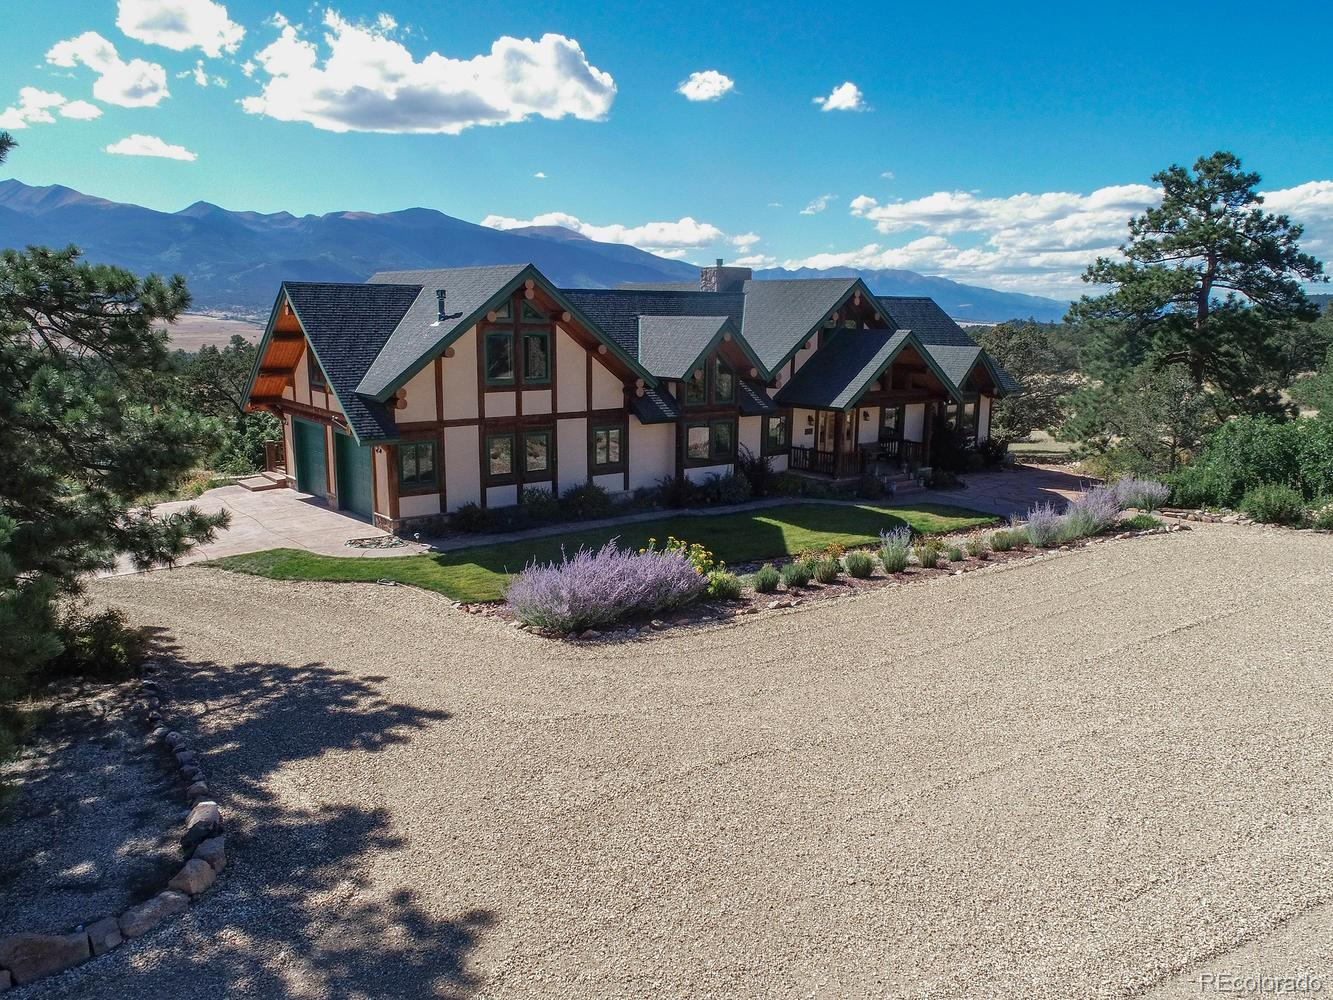 2600 Fka 200 Pheasant Loop, Westcliffe, CO 81252 - Westcliffe, CO real estate listing